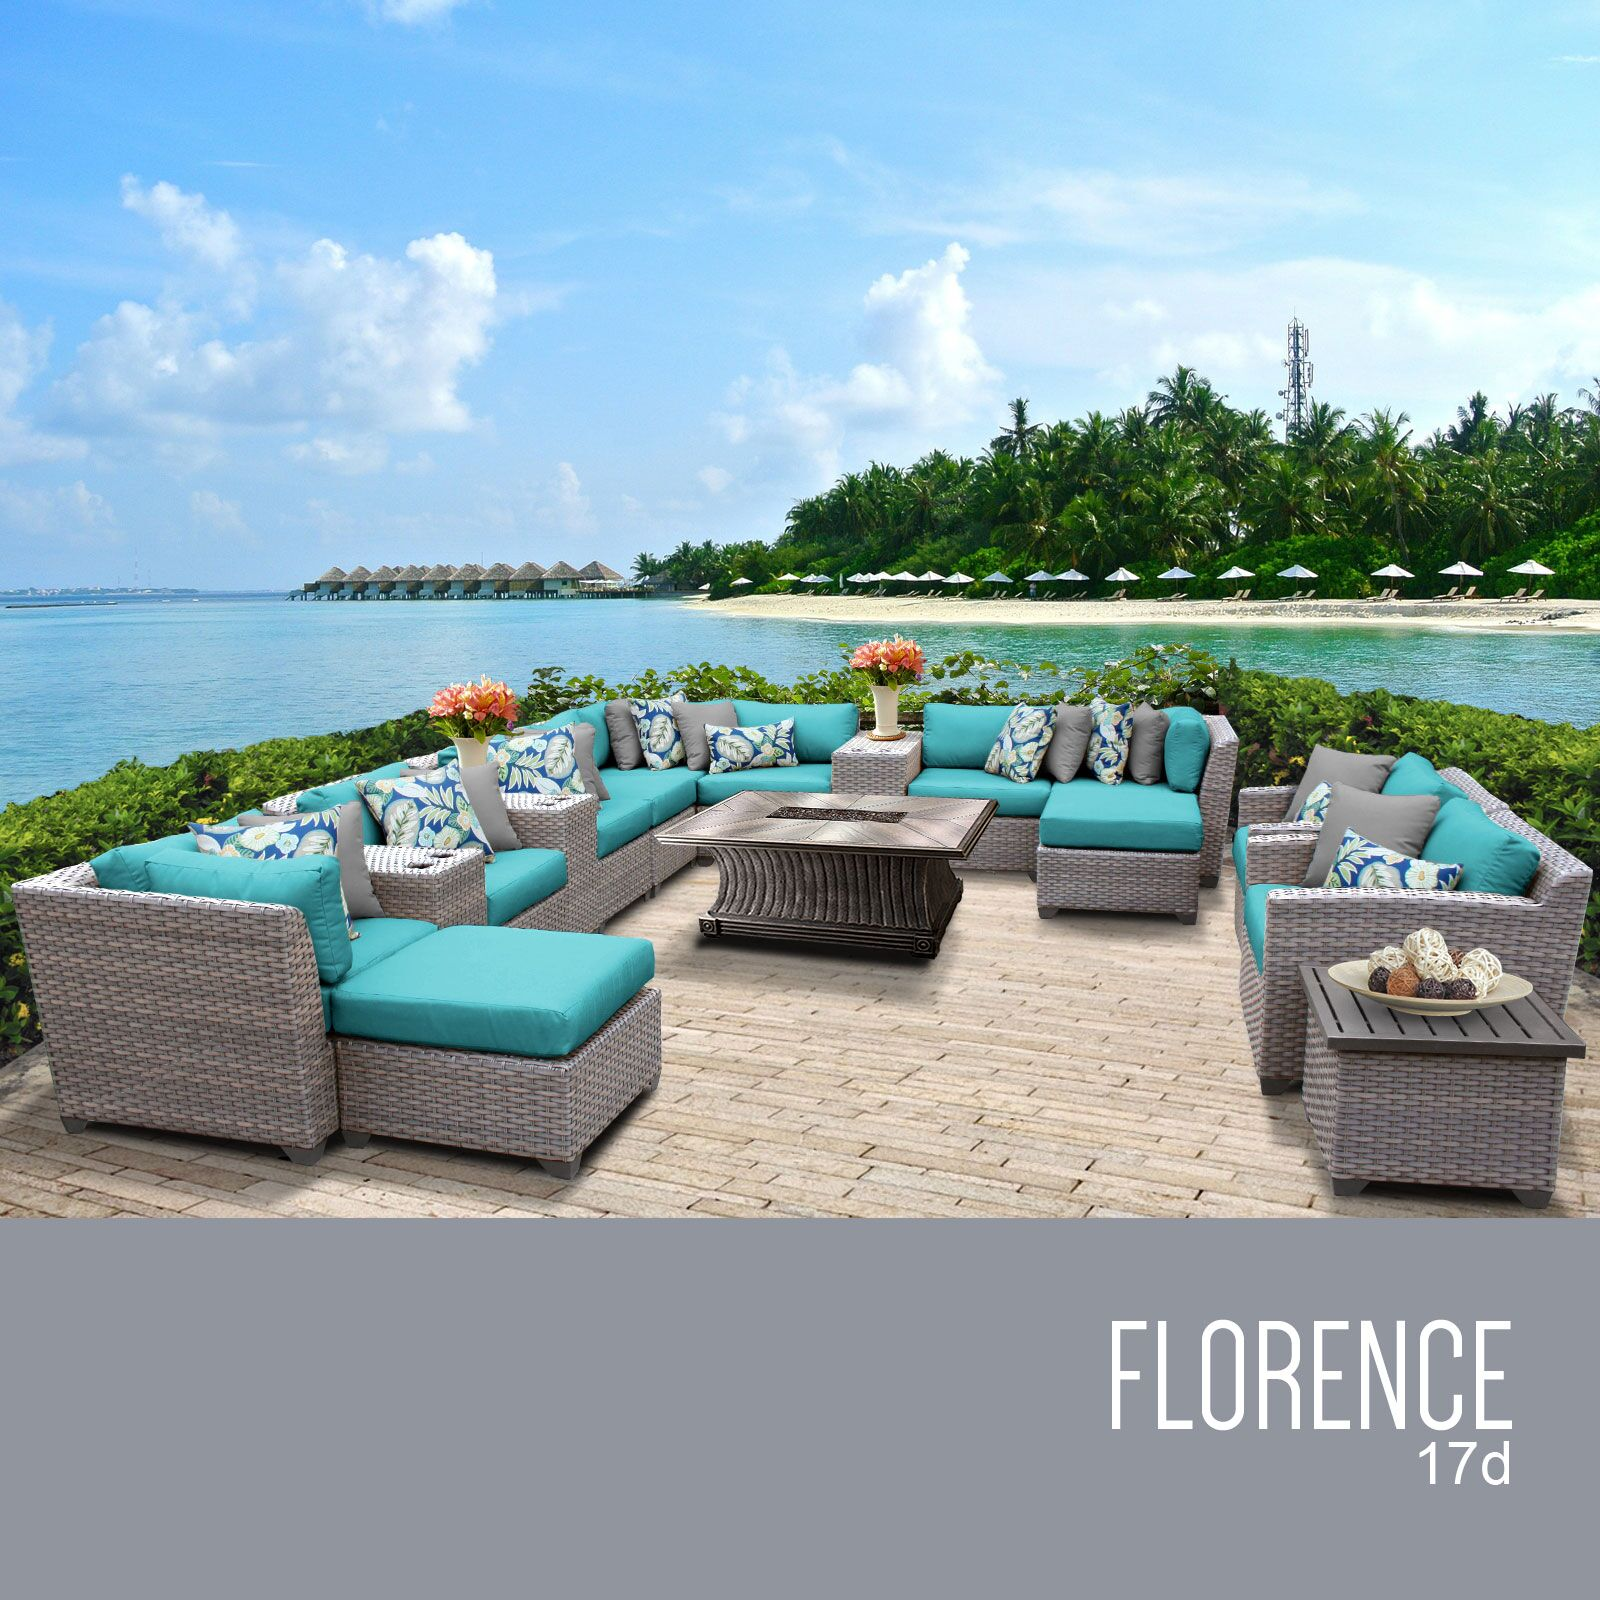 Florence 17 Piece Rattan Sectional Set with Cushions Cushion Color: Aruba